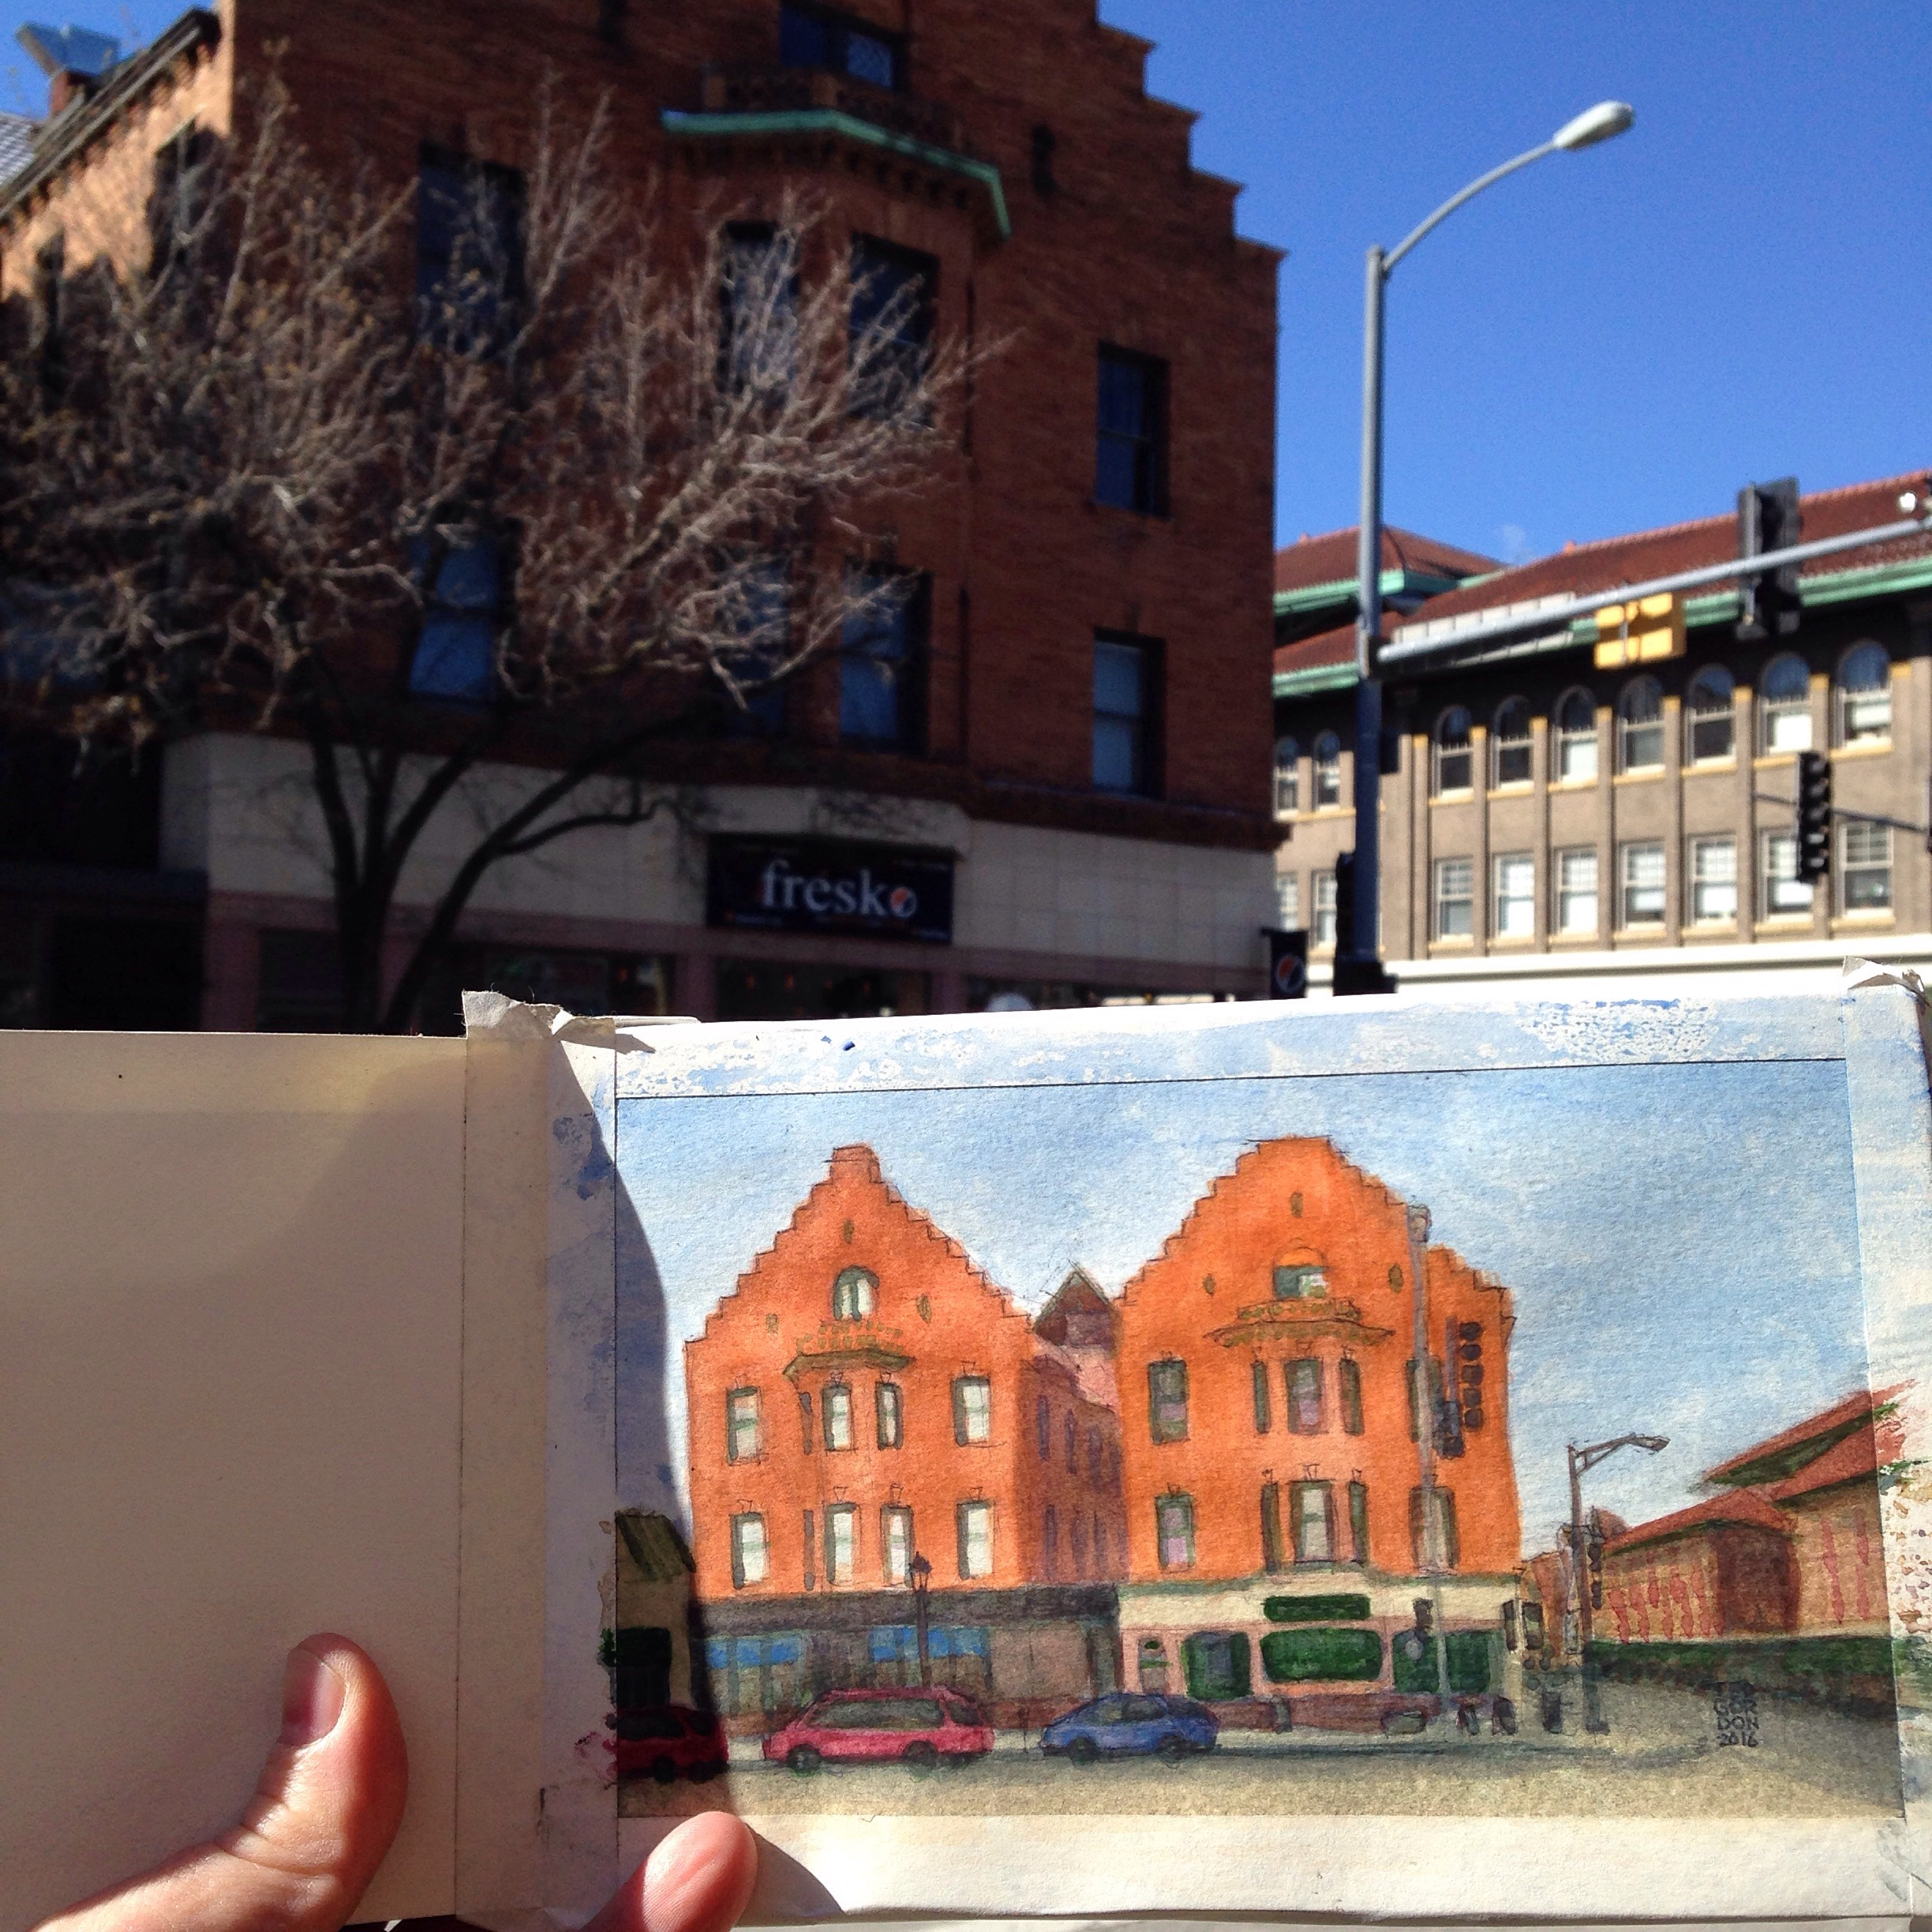 Lake & OP Ave: Watercolor painting while sitting in the cafe across the street this morning.